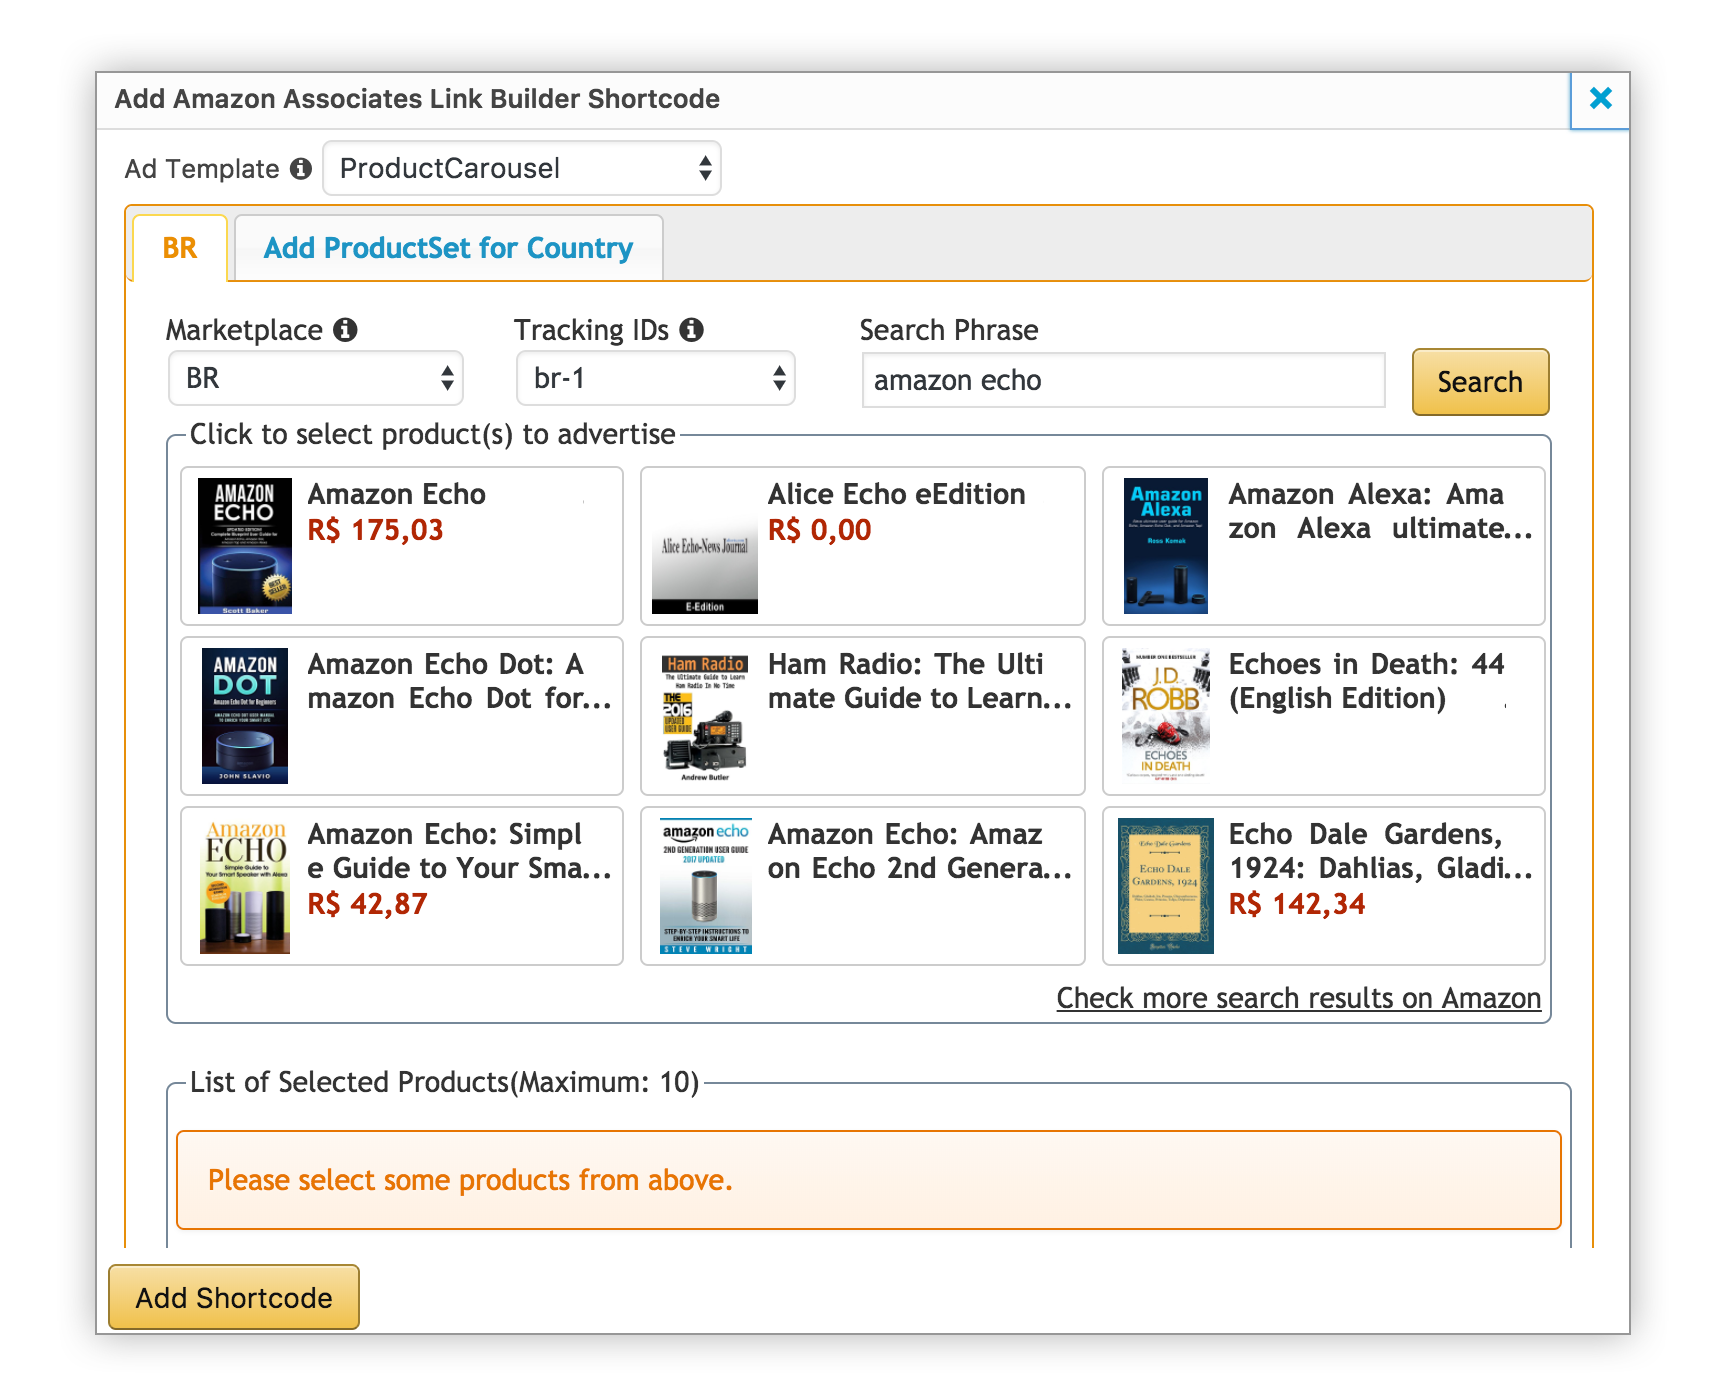 Amazon com Associates Central - Resource Center - How To Use The